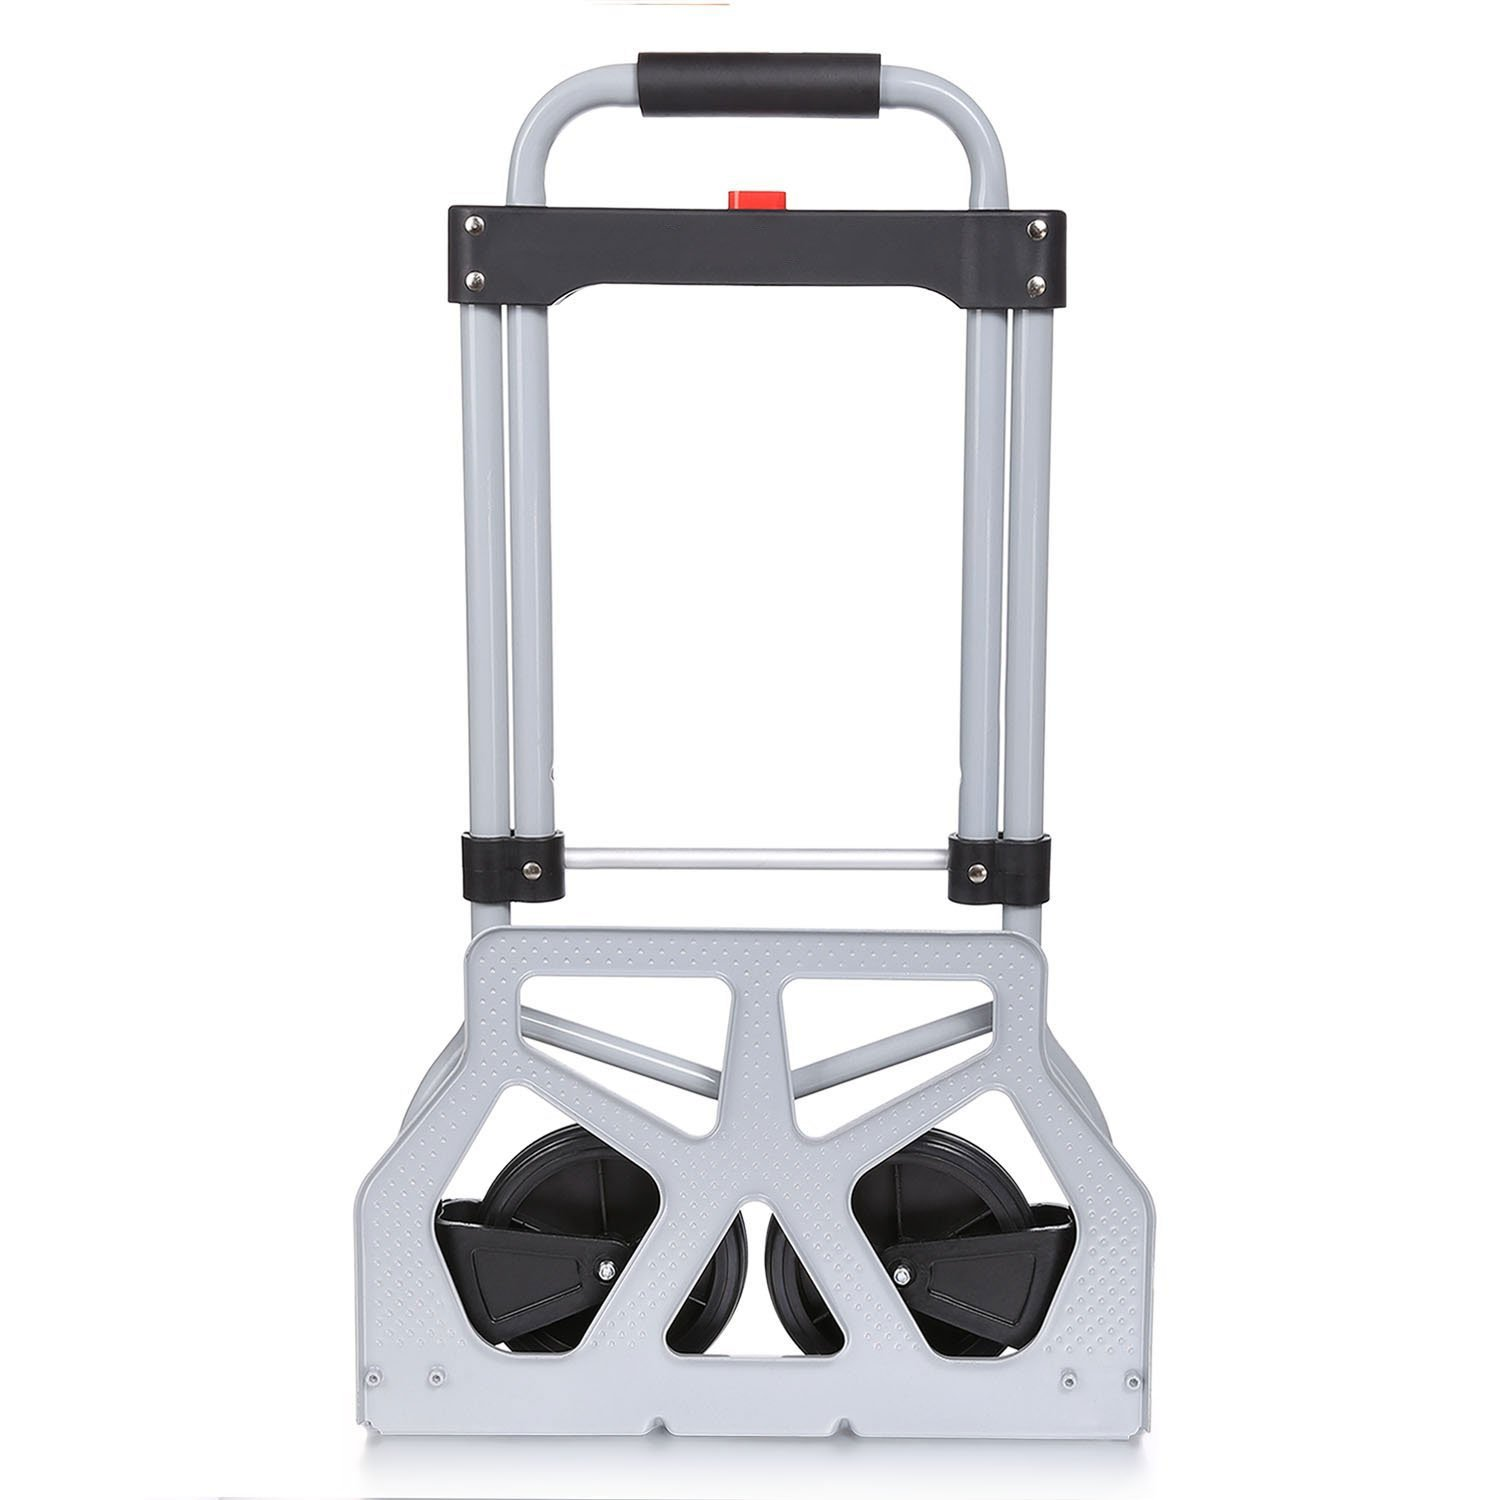 Schafter Heavy Duty Folding Hand Truck Luggage Trolley Cart,Lightweight Travel Dolly Box/Case Carrier for Indoor Outdoor Travel Shopping